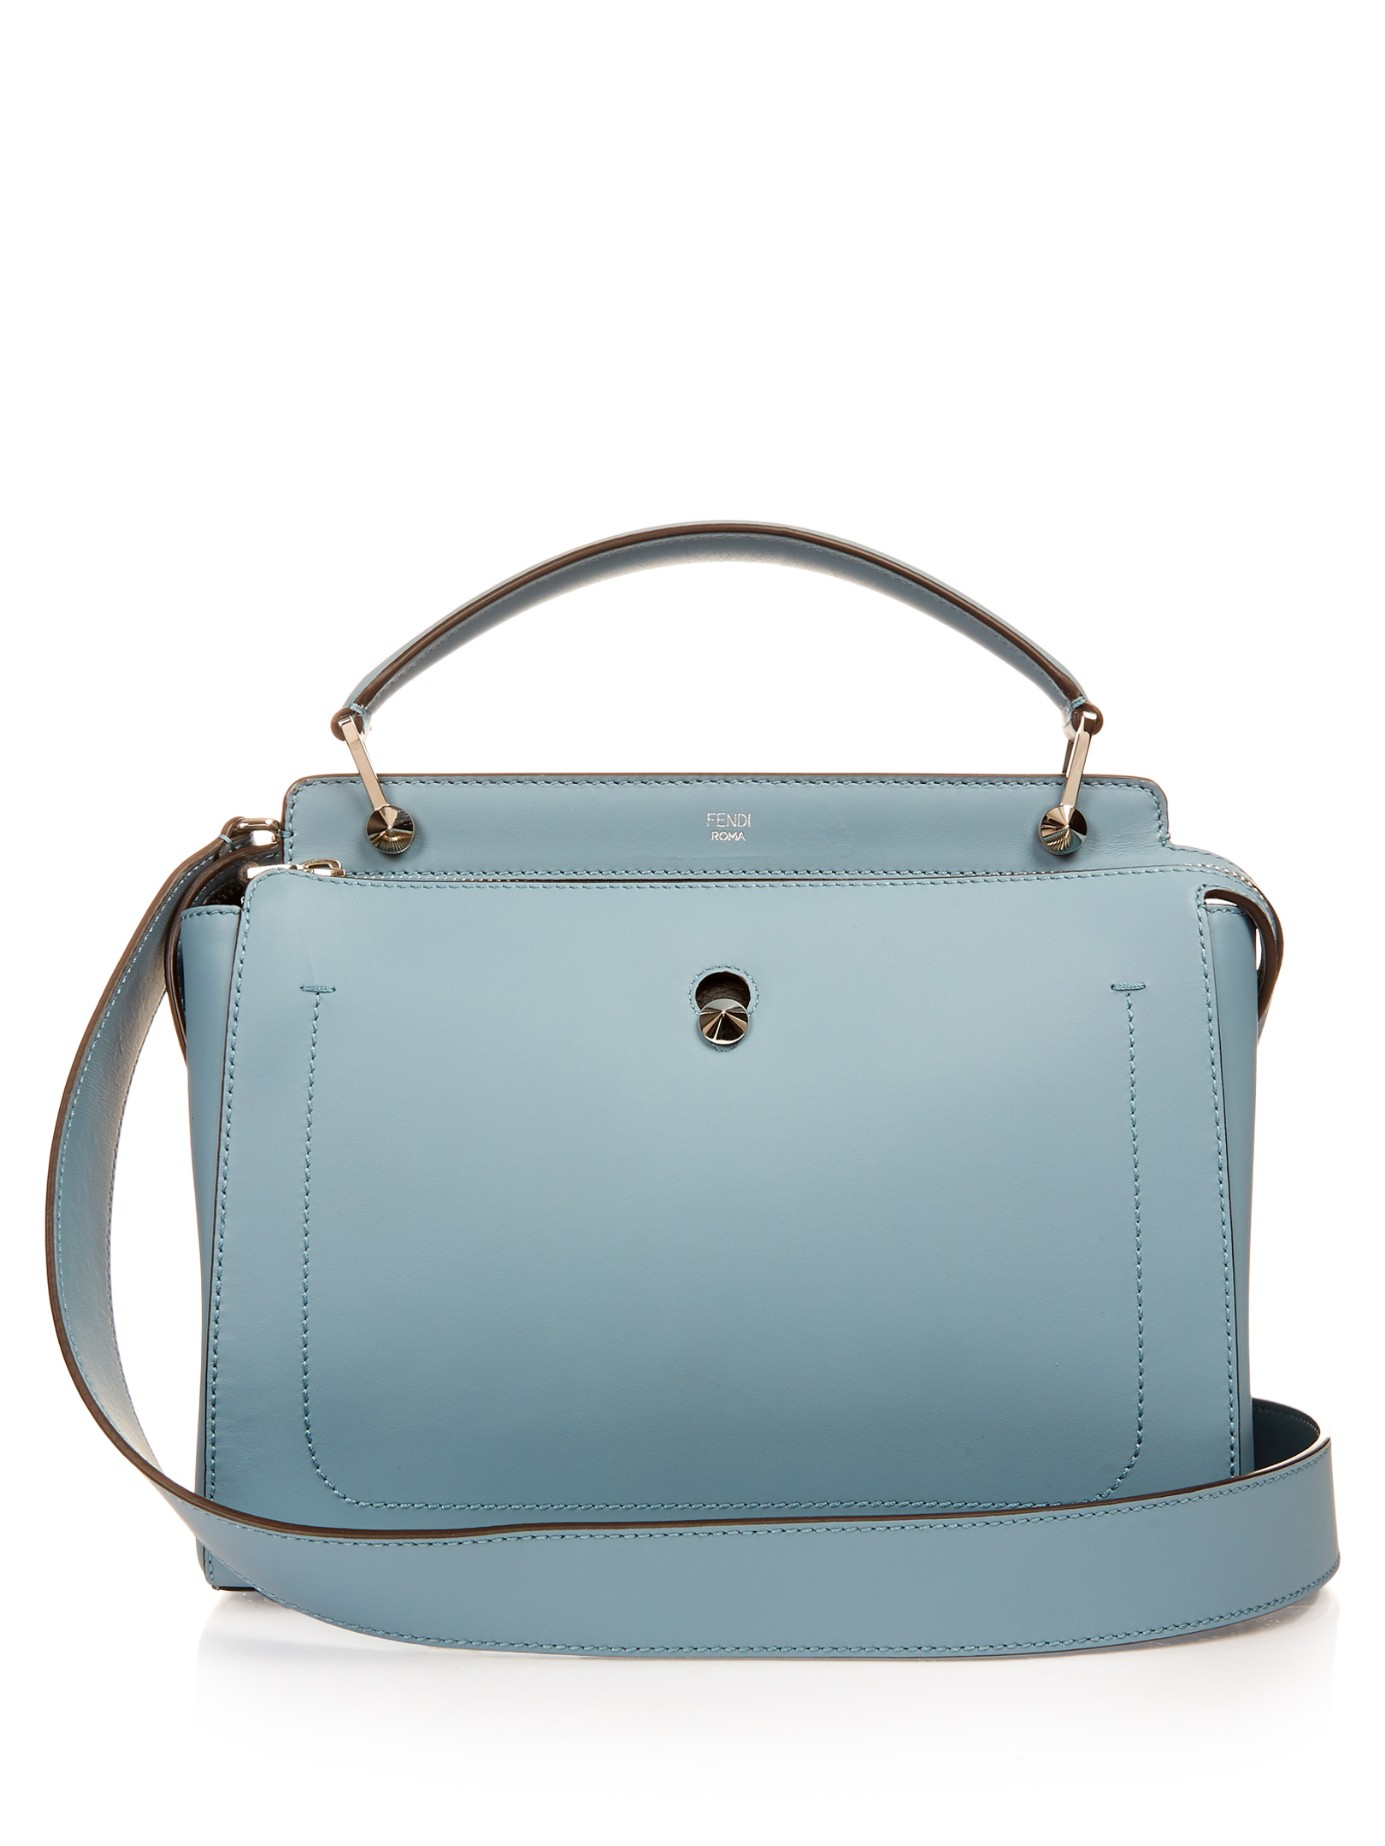 bfdf4cae3a4b Lyst - Fendi Dotcom Leather Bag in Blue